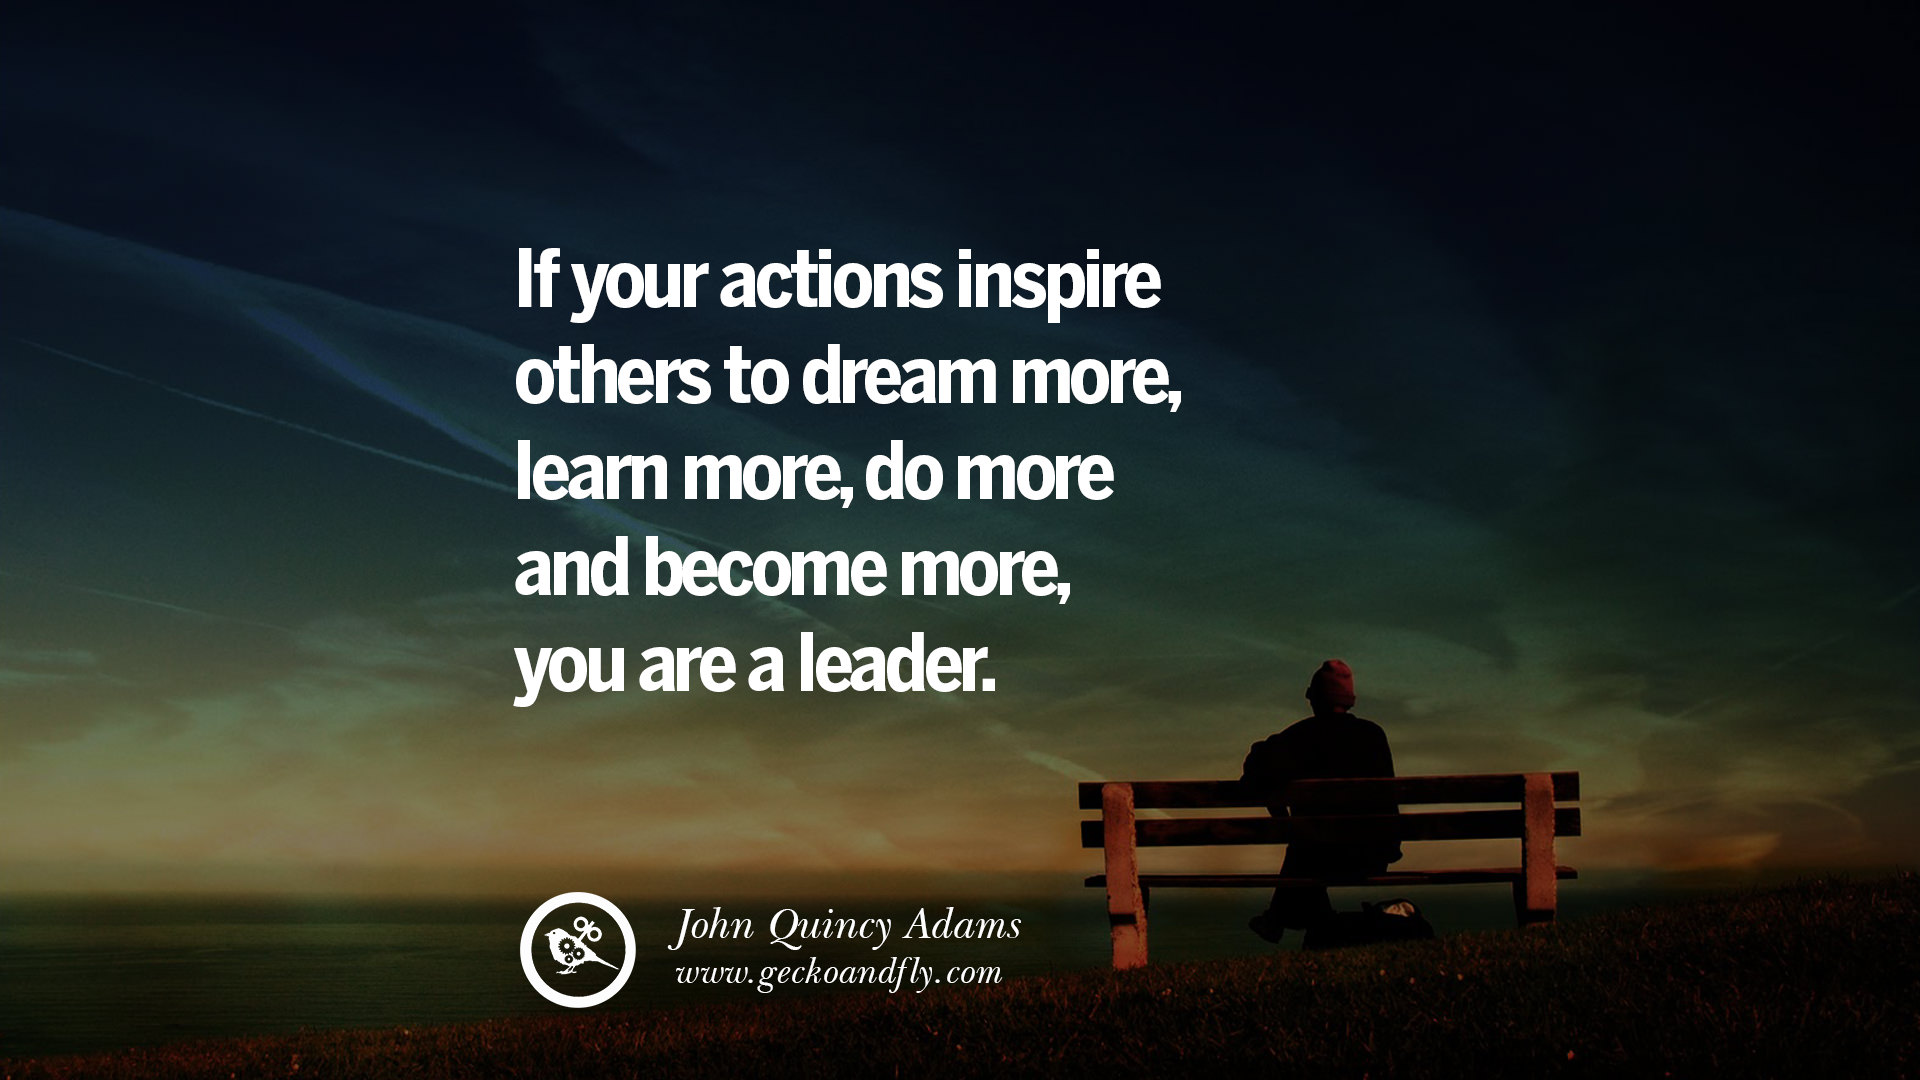 uplifting and motivational quotes on management leadership if your actions inspire others to dream more learn more do more and become more you are a leader john quincy adams